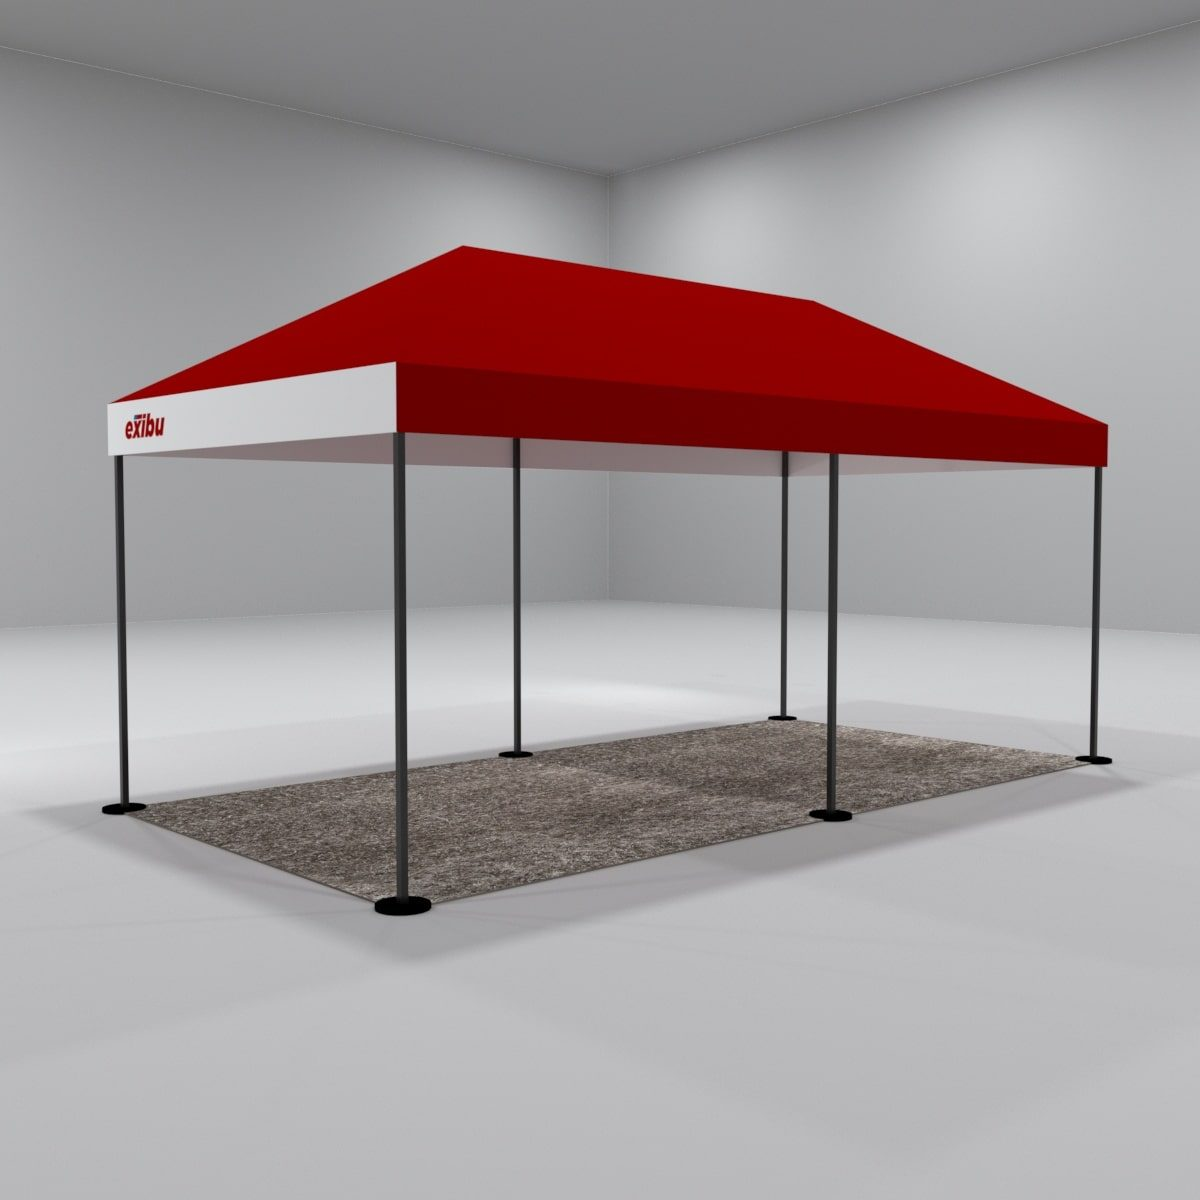 Kit 2 – 3X6 M Gazebo With Facia Printing